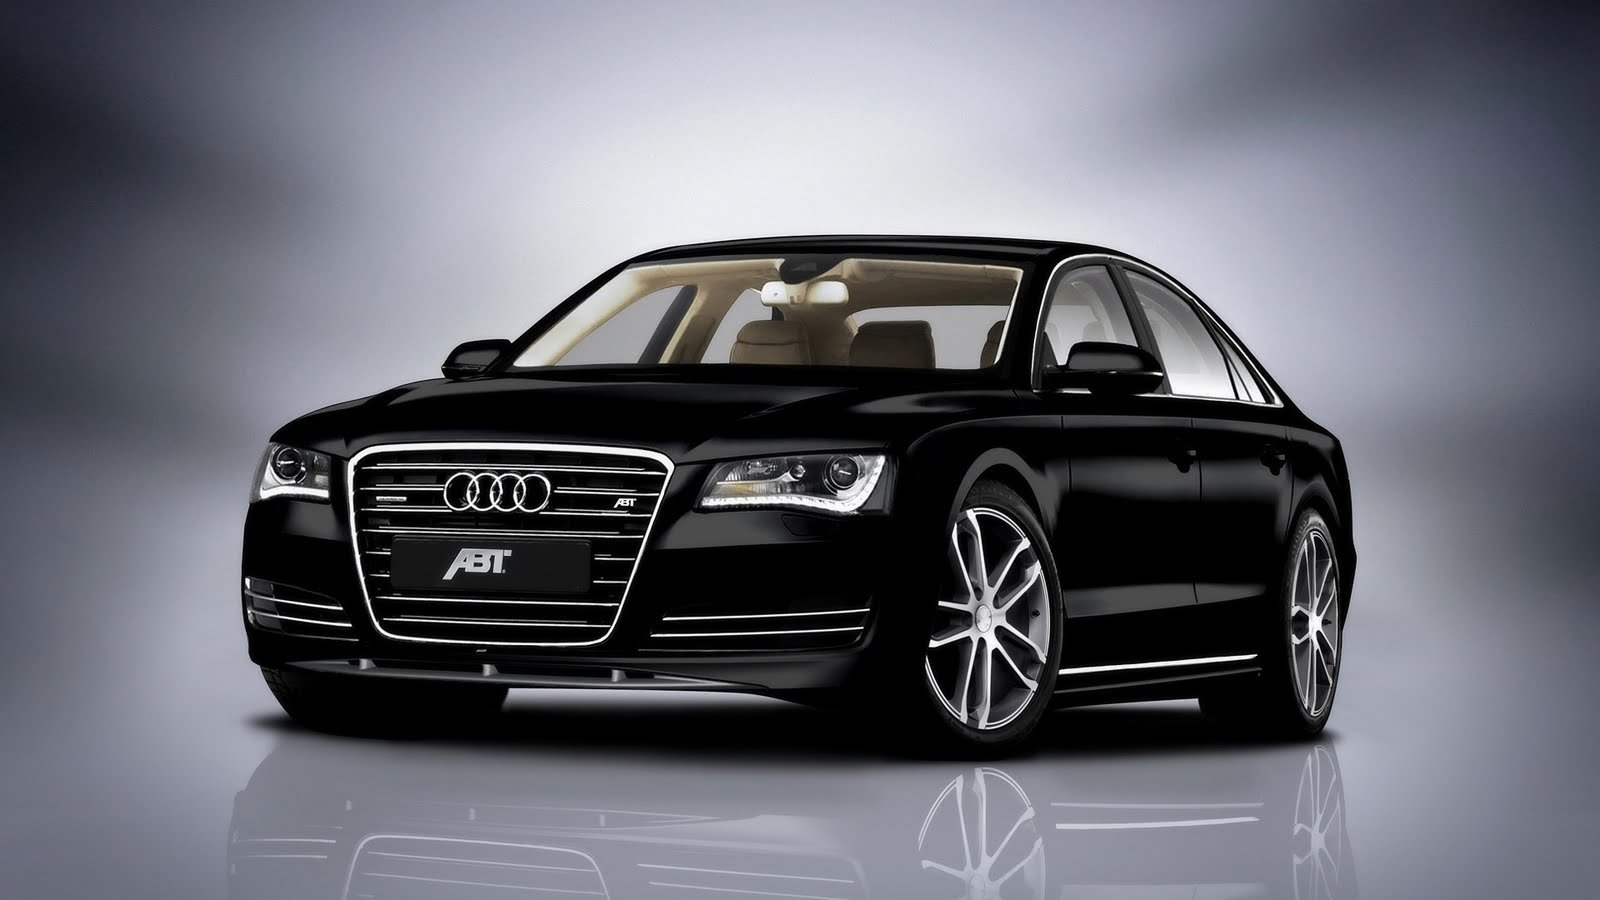 Latest Popular Softwares Games Cartoons Audi Cars Hd Wallpapers Free Download